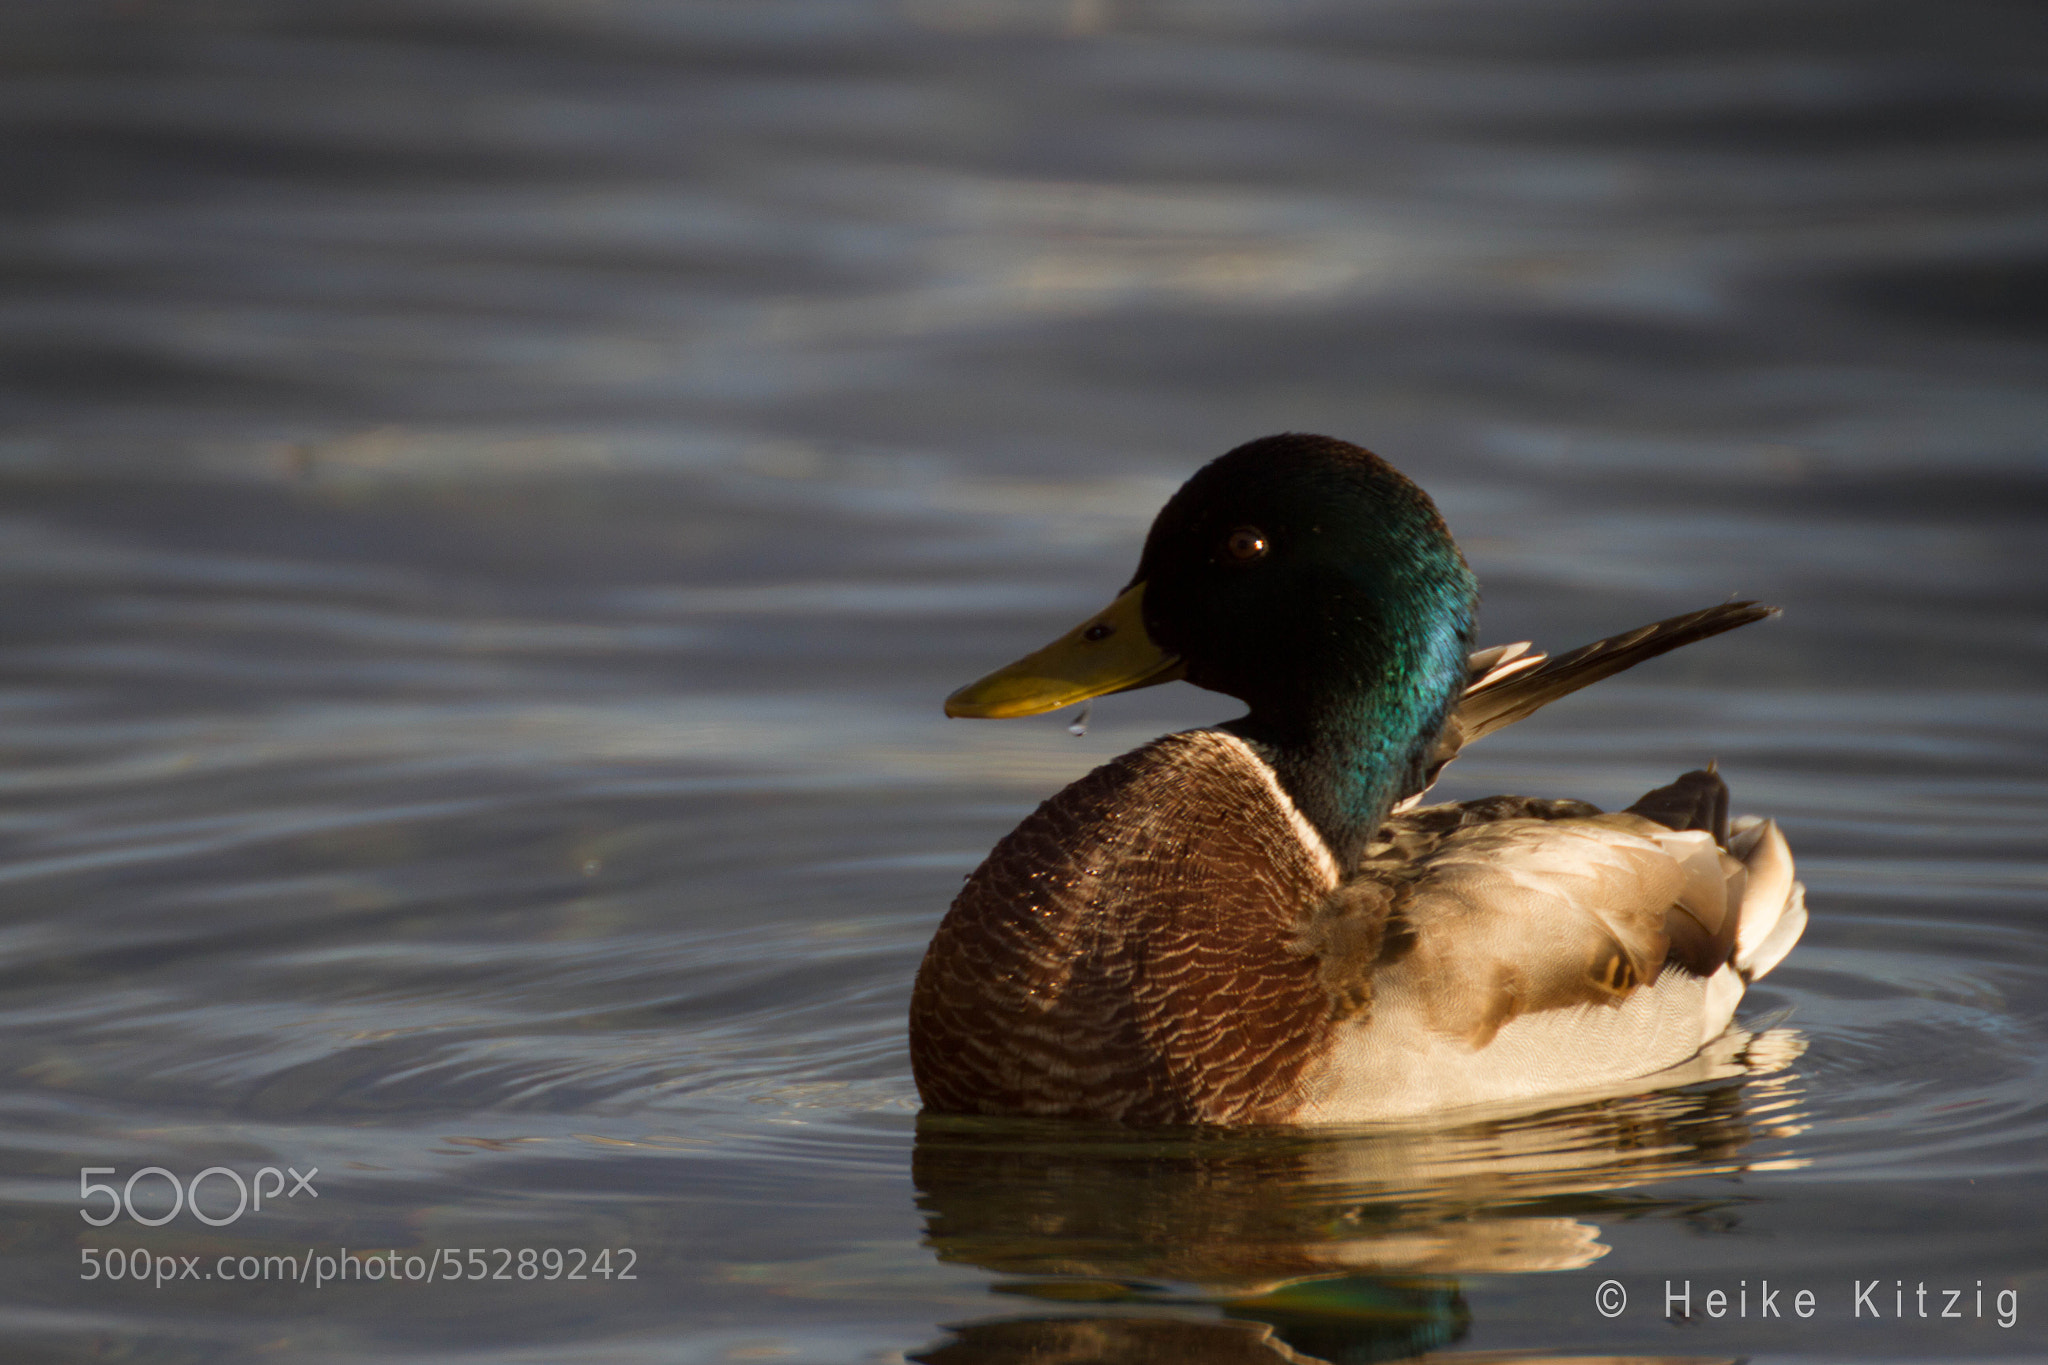 Photograph Wild duck Lake Constance 2 by Heike Kitzig on 500px